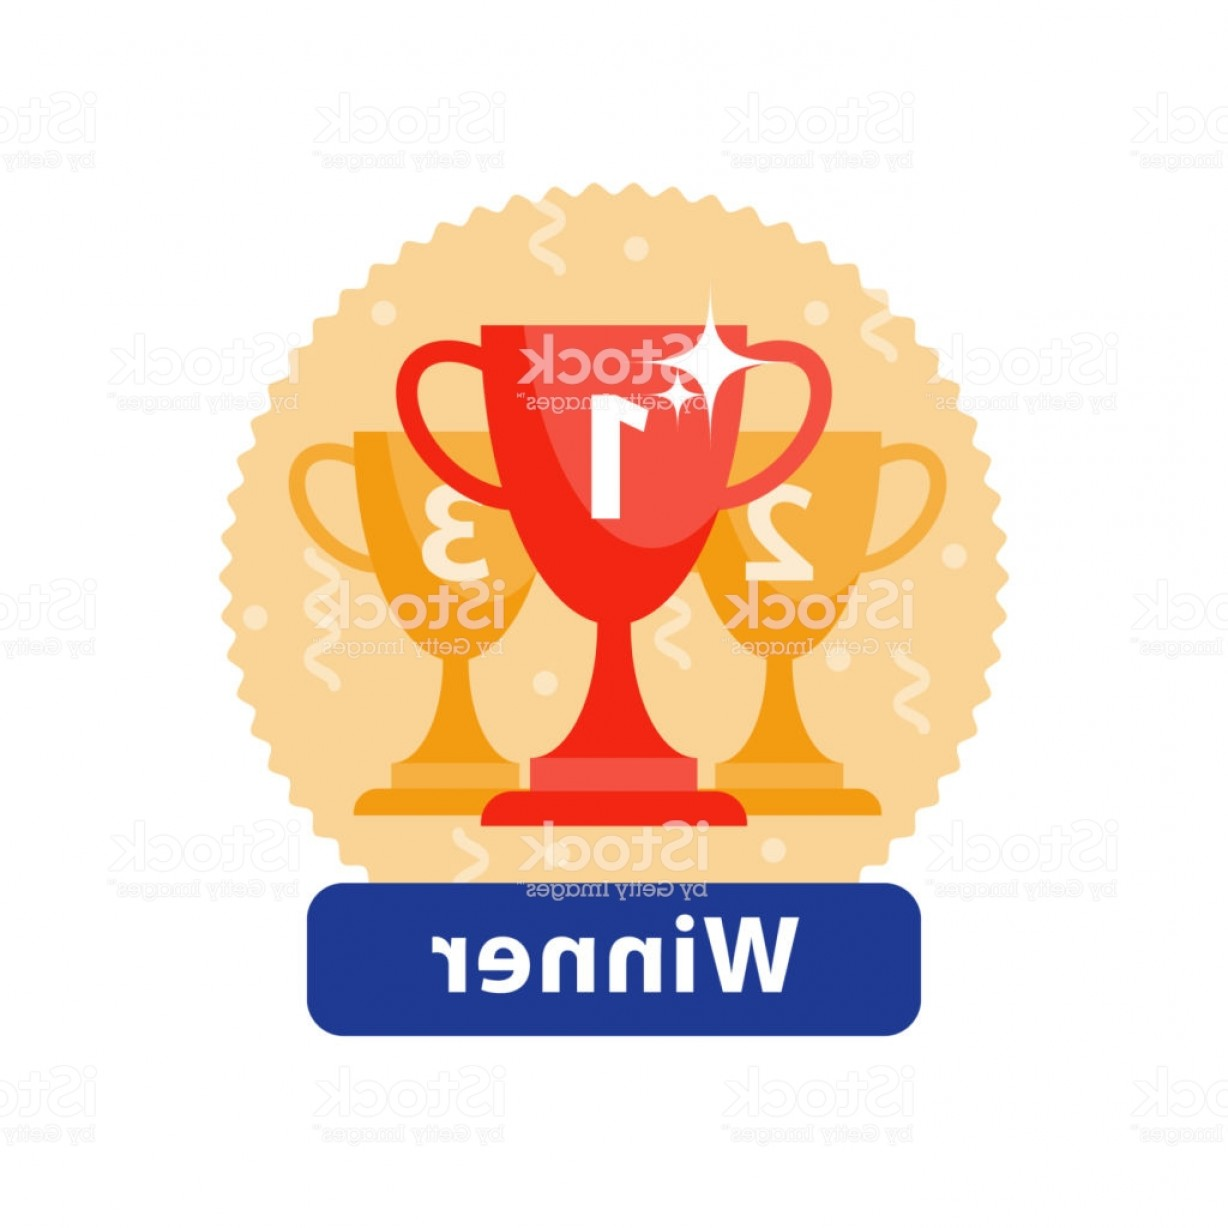 Champion Vector Art: Celebration Winner Cup First Place Award Icon Champion Goblet Top Success Gm